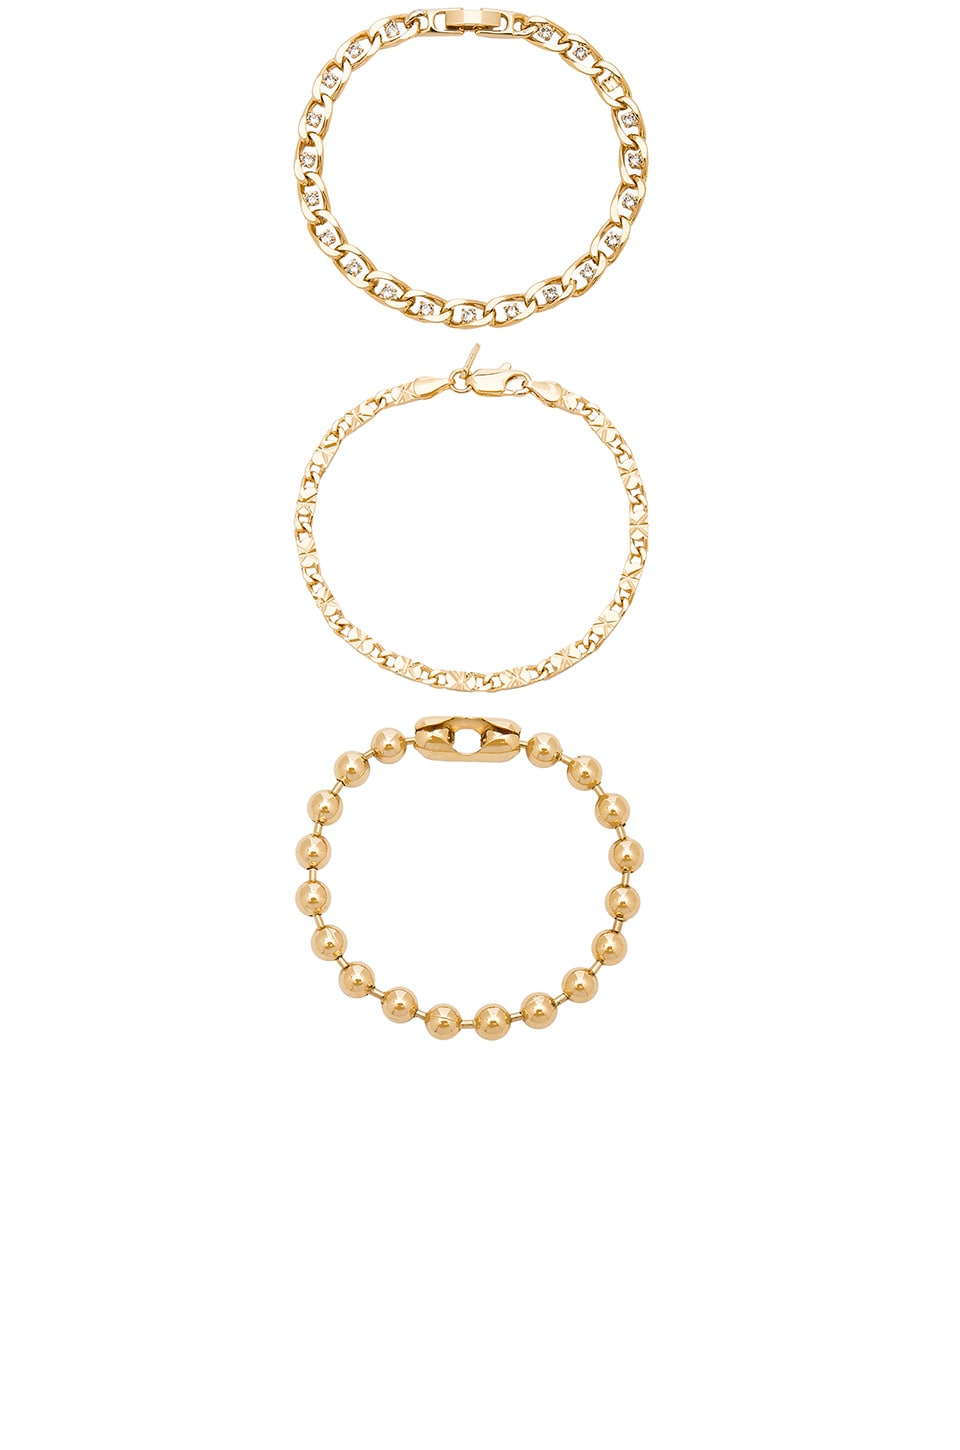 Vanessa Mooney High Roller Bracelets in Gold